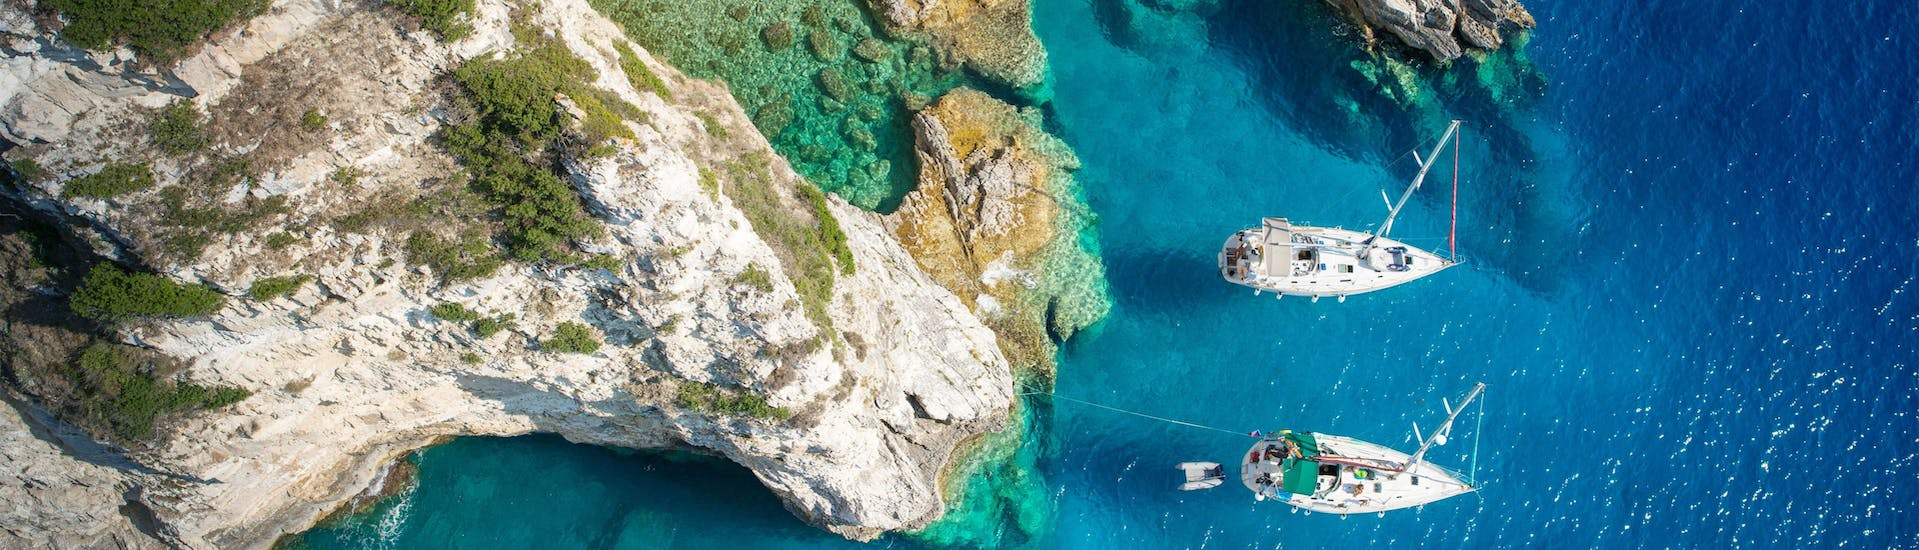 Aerial view of a cove on the island of Antipaxos where boats are moored, a popular destination in Greece for boat trips.